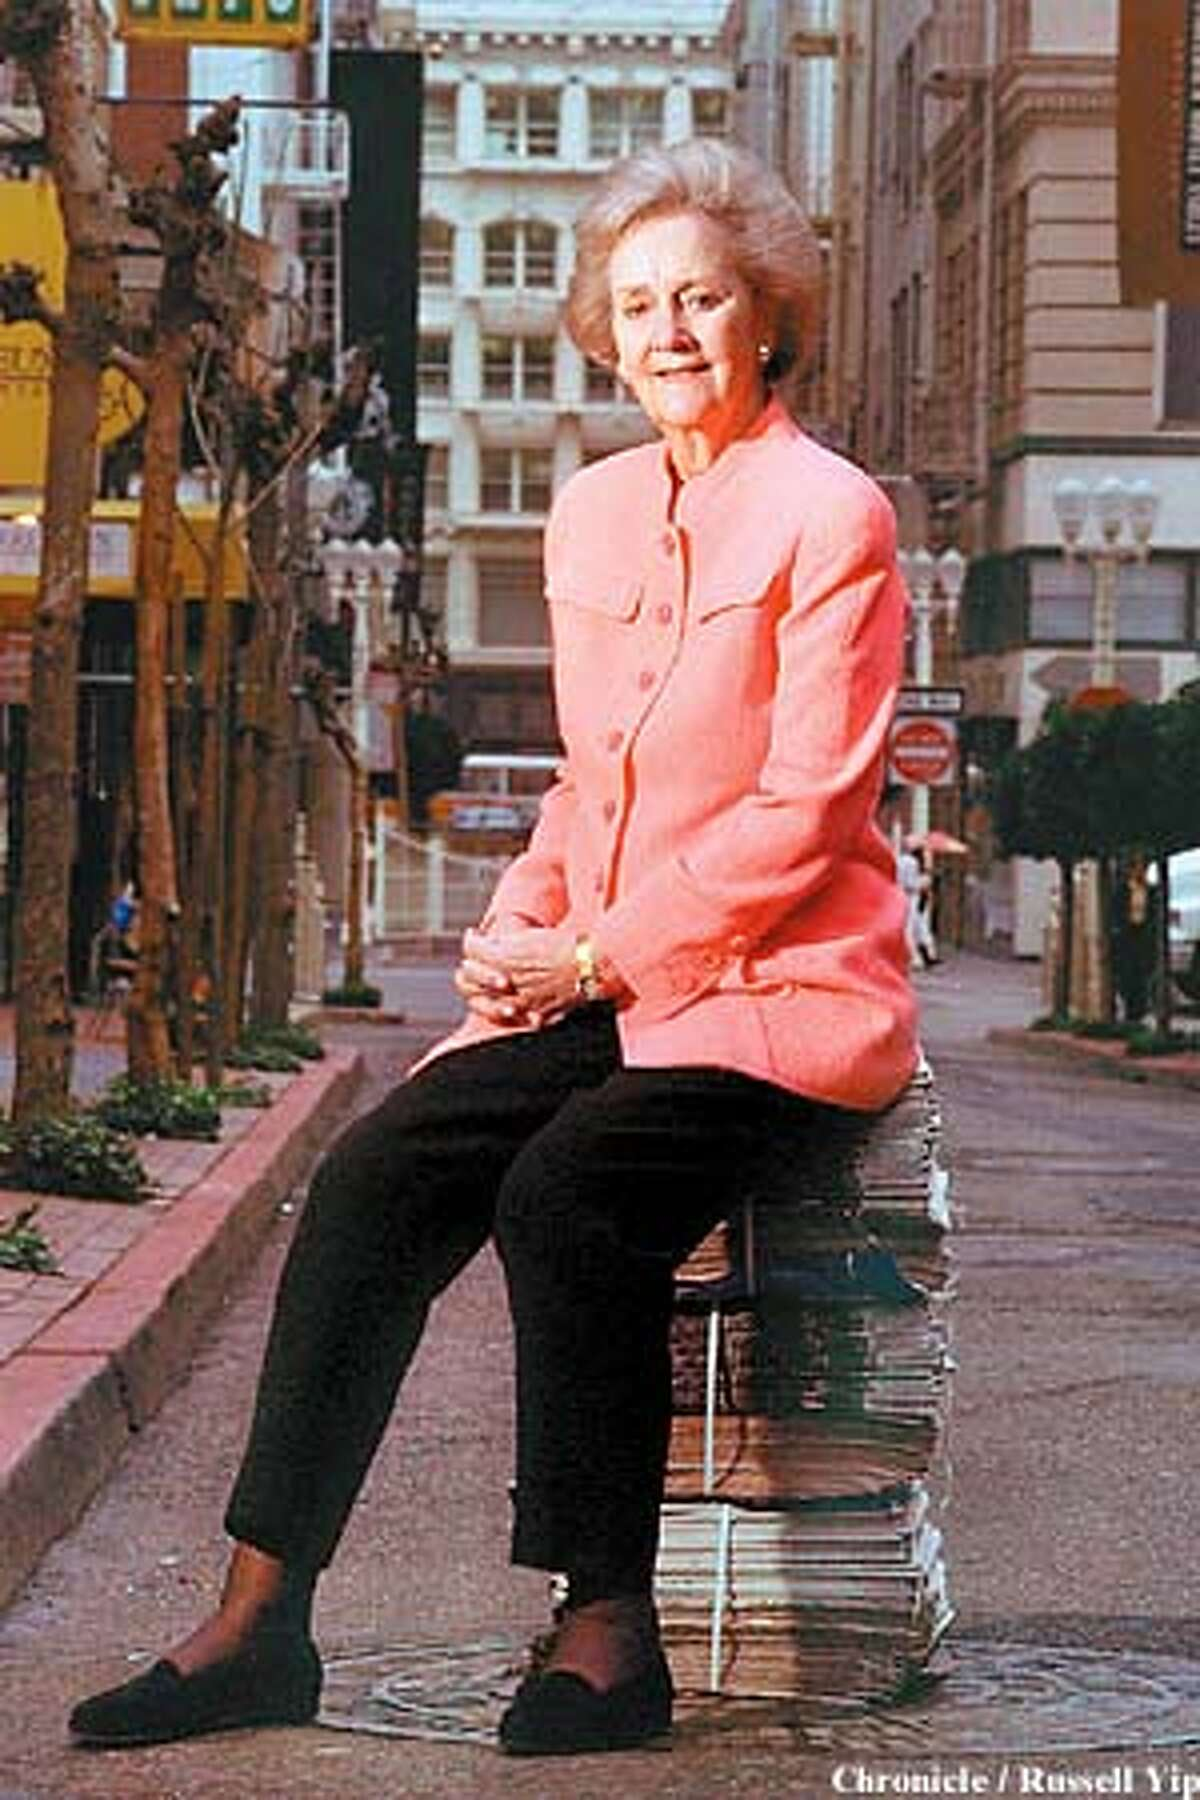 In town to promote a book, the late Katharine Graham posed for a photograph by the Chronicle's Russell Yip in 1997